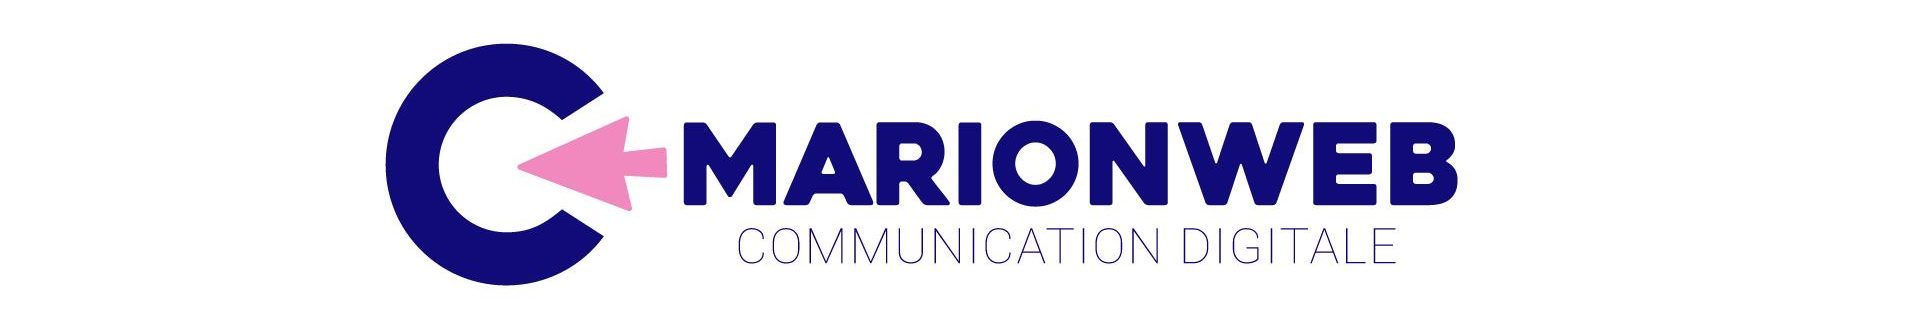 CMARIONWEB communication digitale